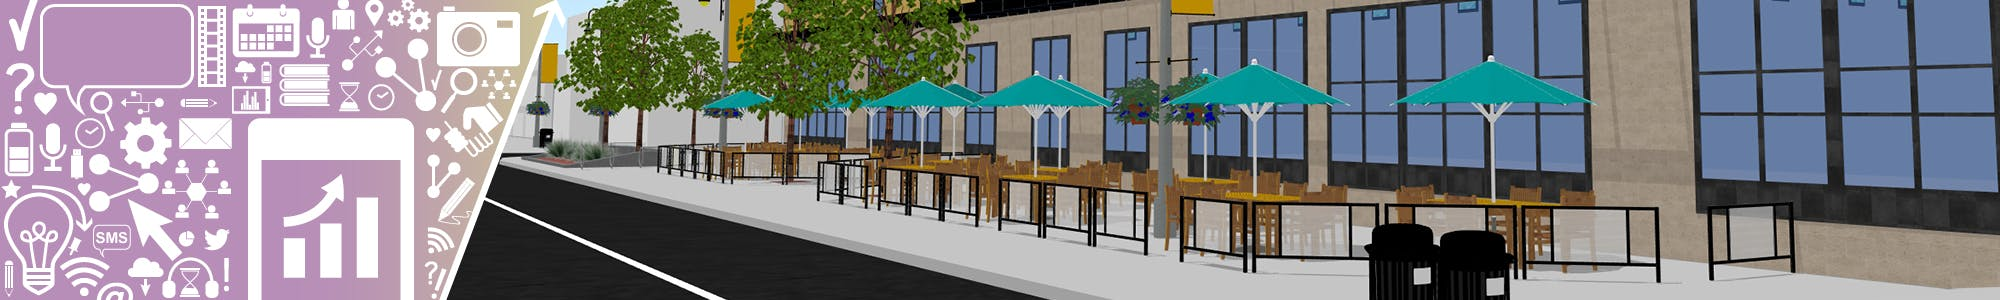 Engagement icons beside one of the design options for the King St. Pilot including waste receptacles, a patio, tables and umbrellas.